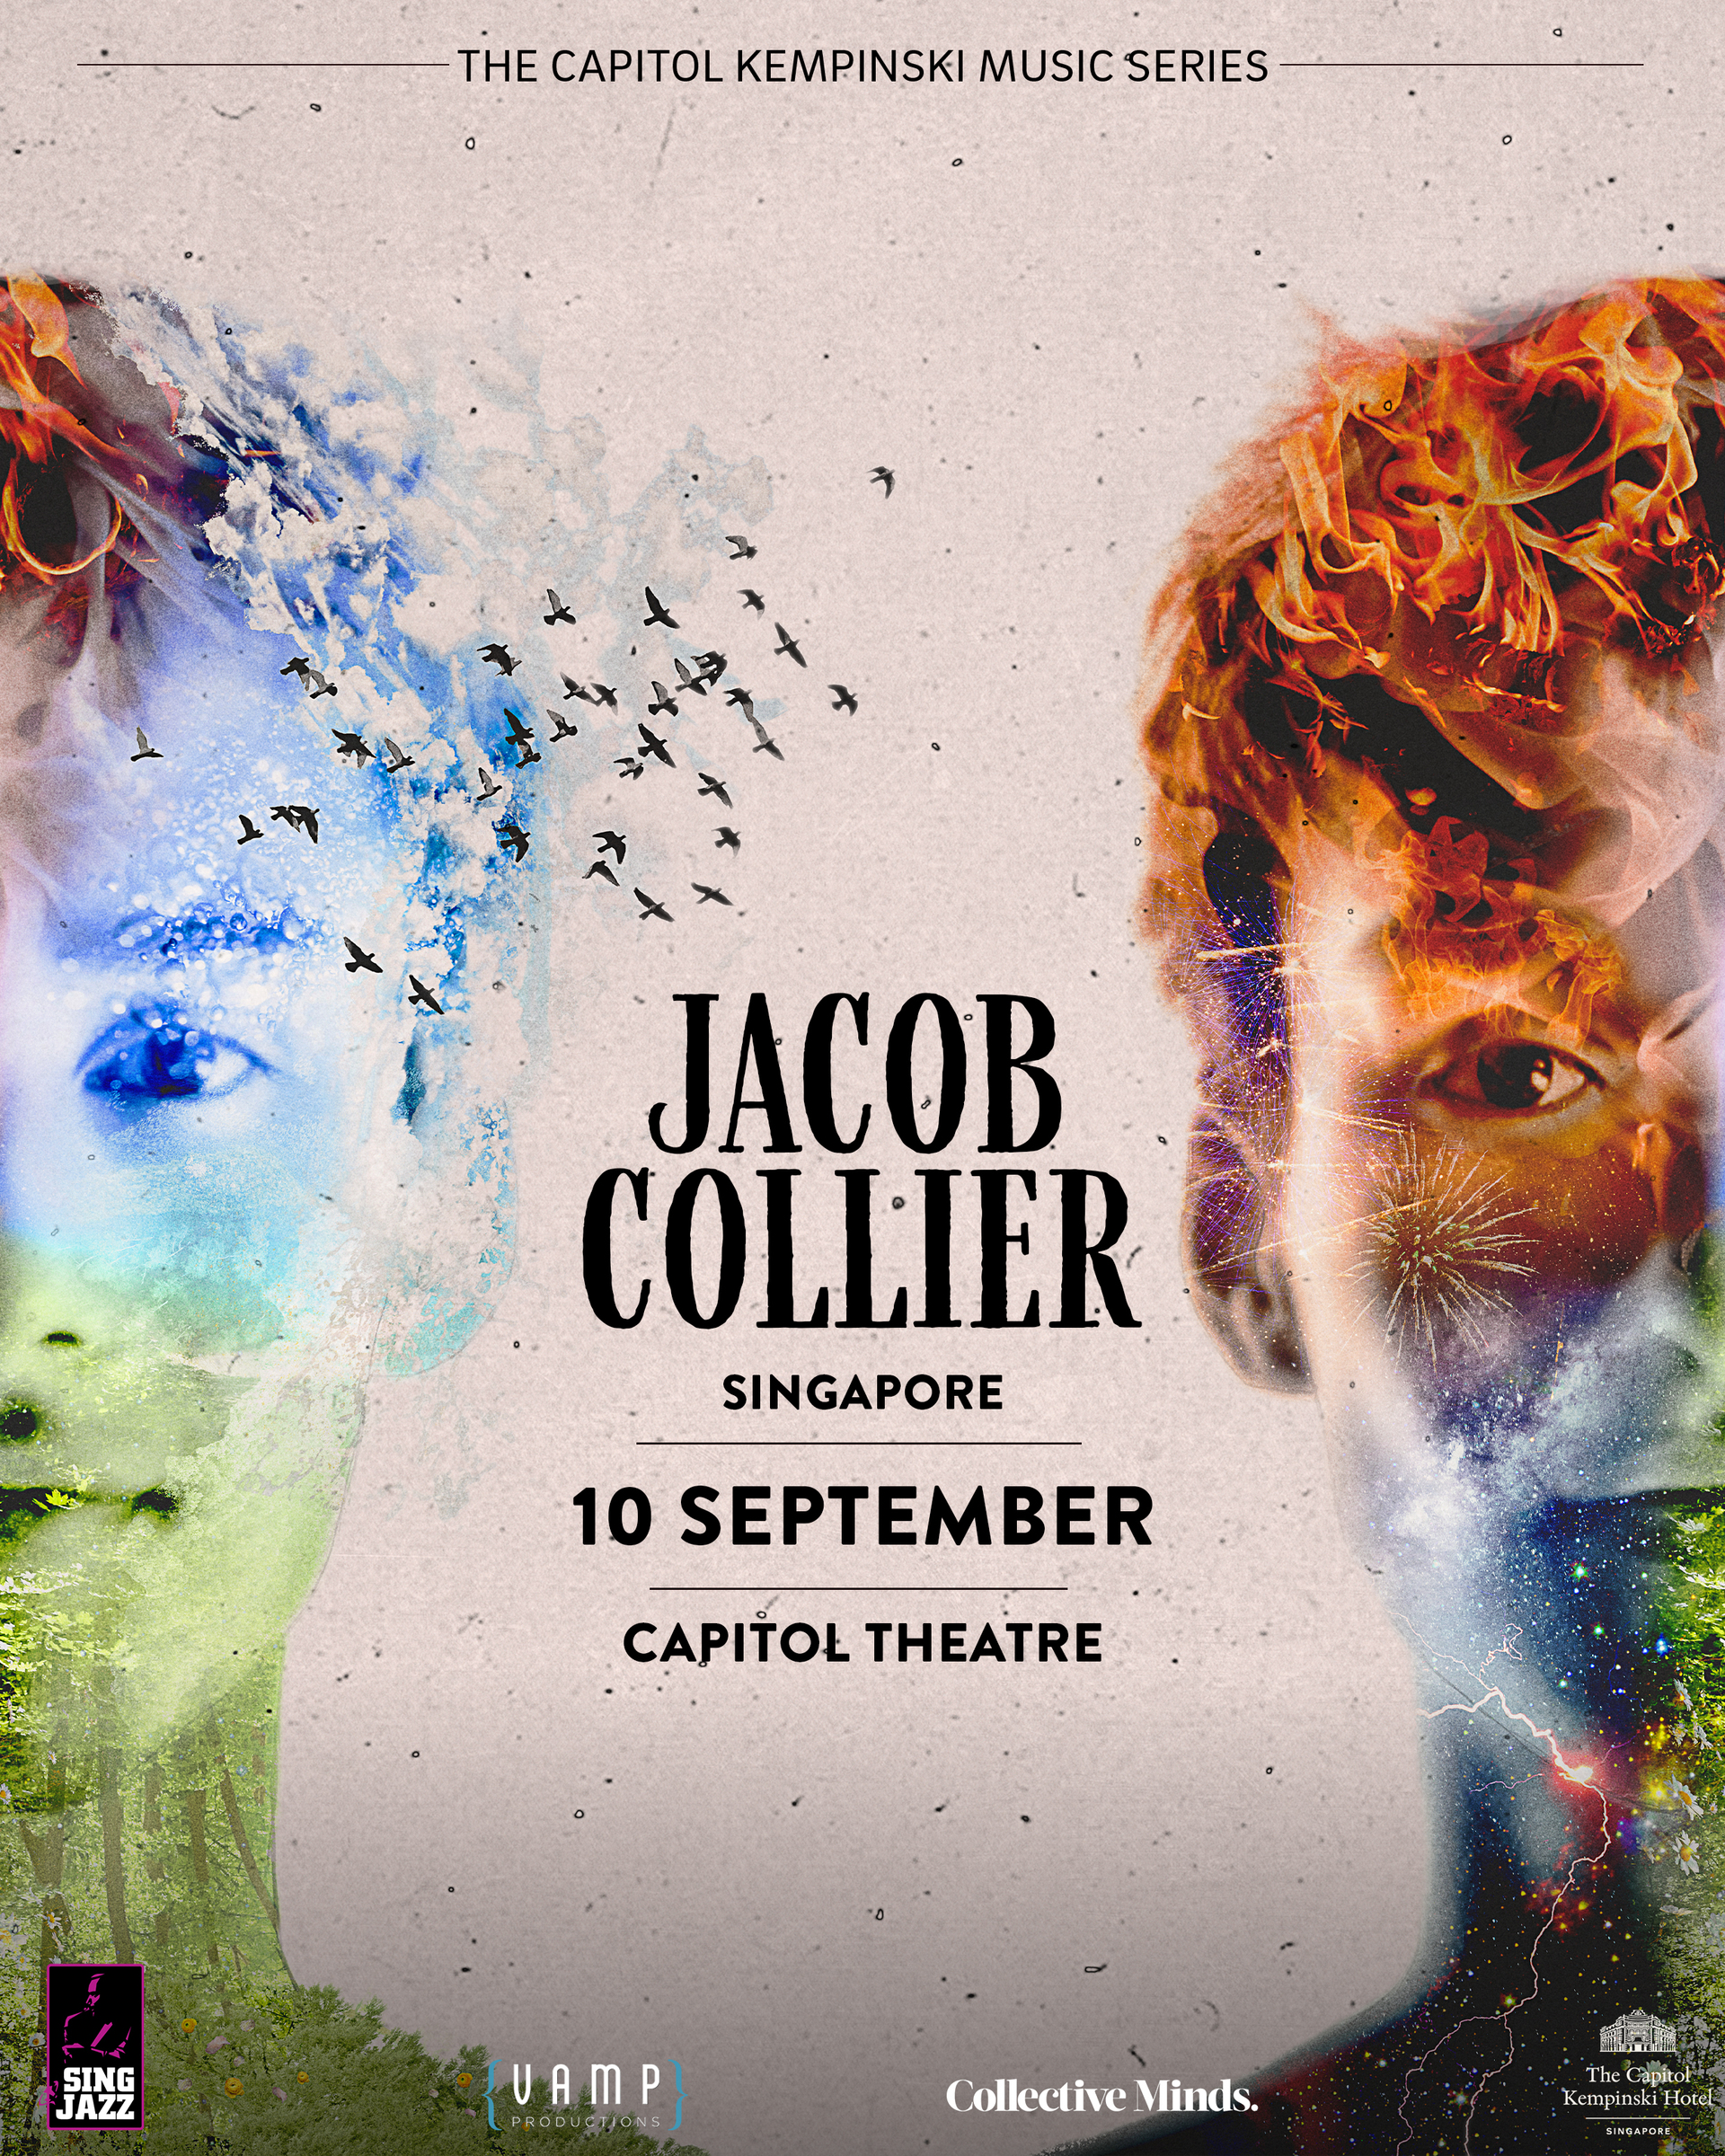 Jacob Collier to perform in Singapore this September